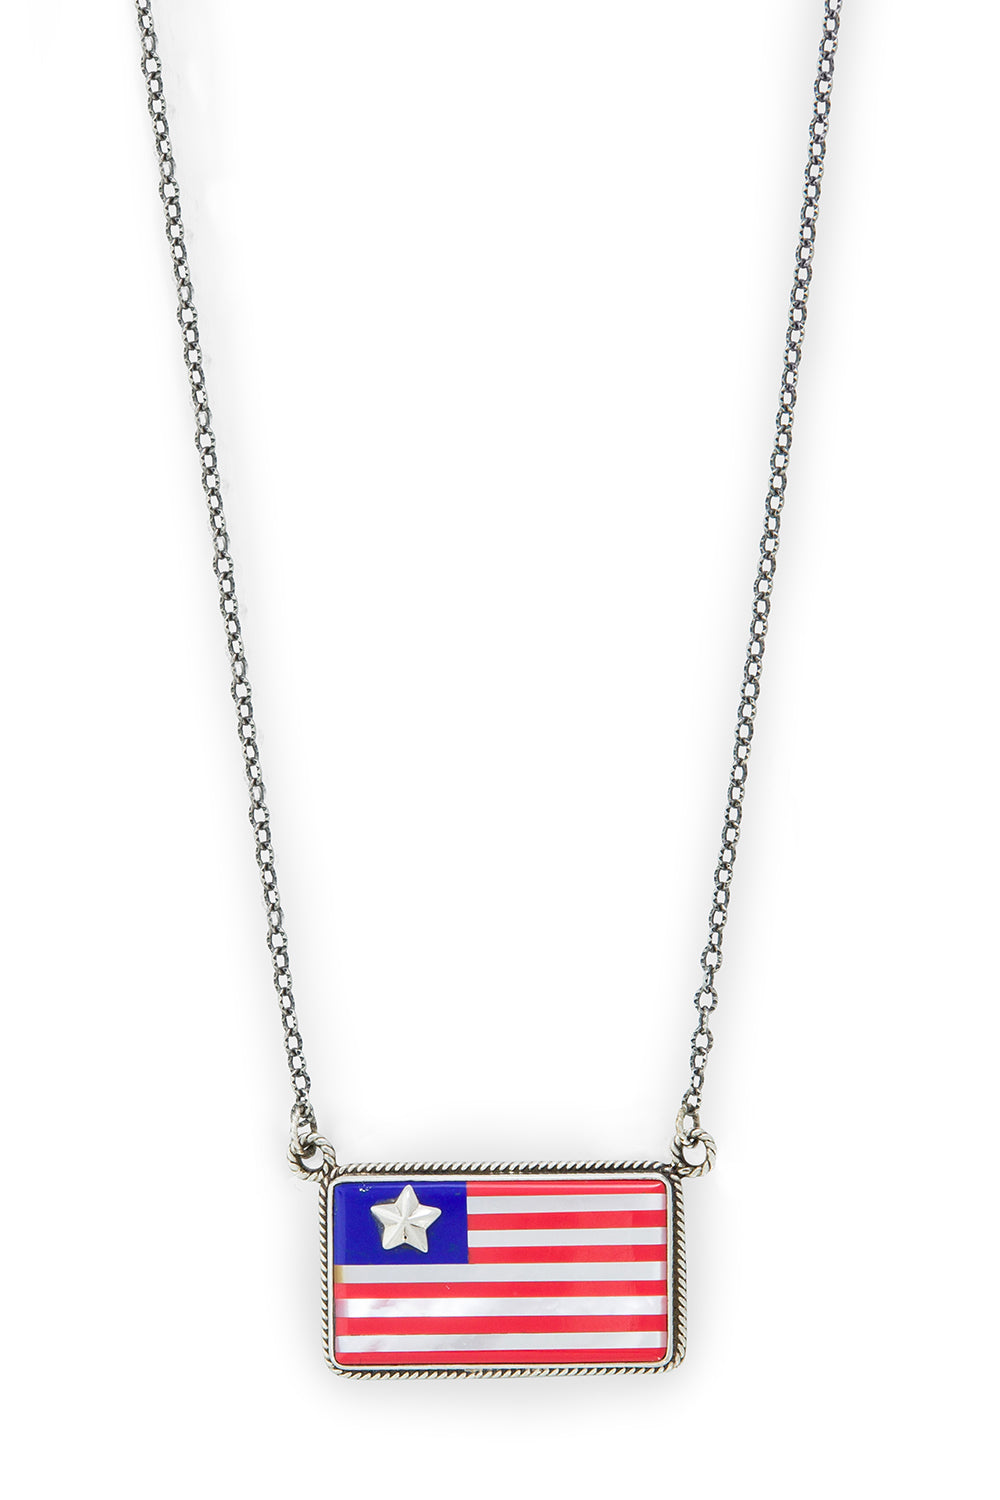 Necklace, Flag, Old Glory, 957